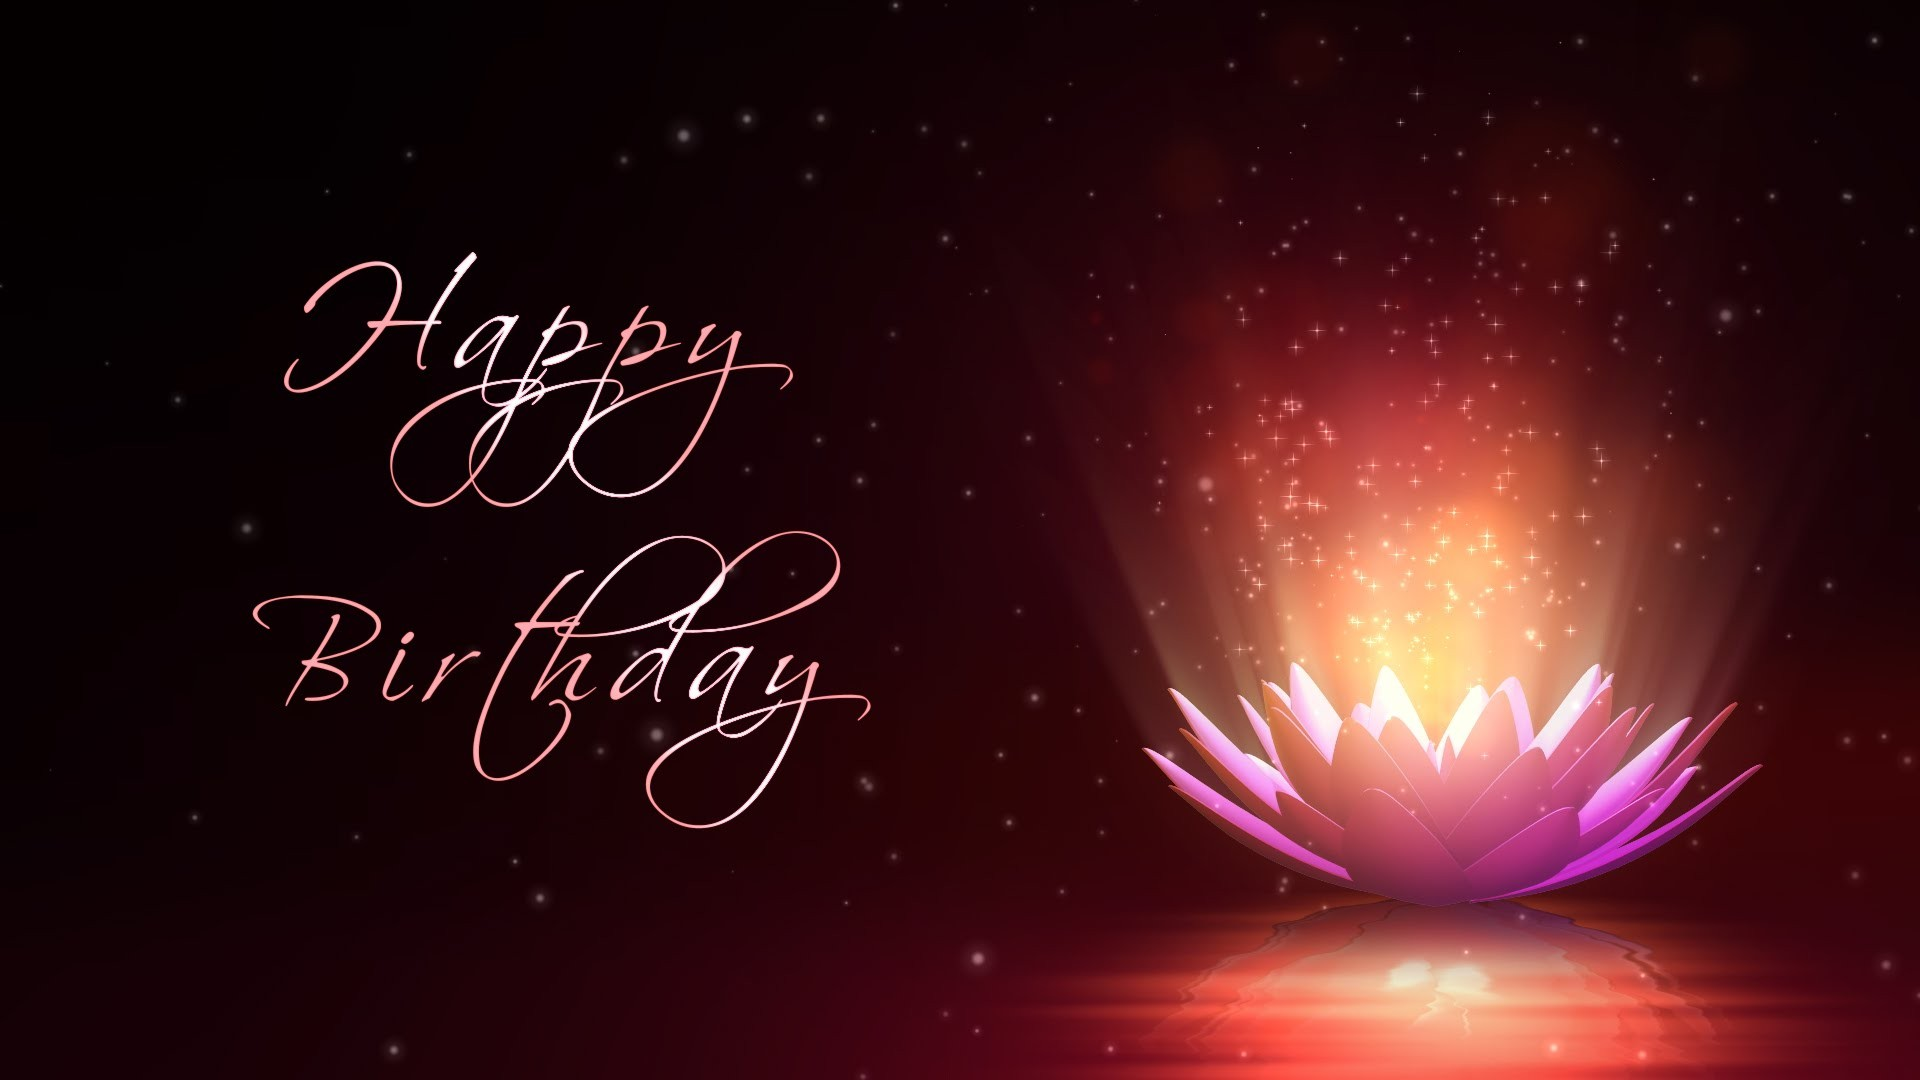 birthday background hd wallpapers ; 305076-happy-birthday-background-1920x1080-windows-xp